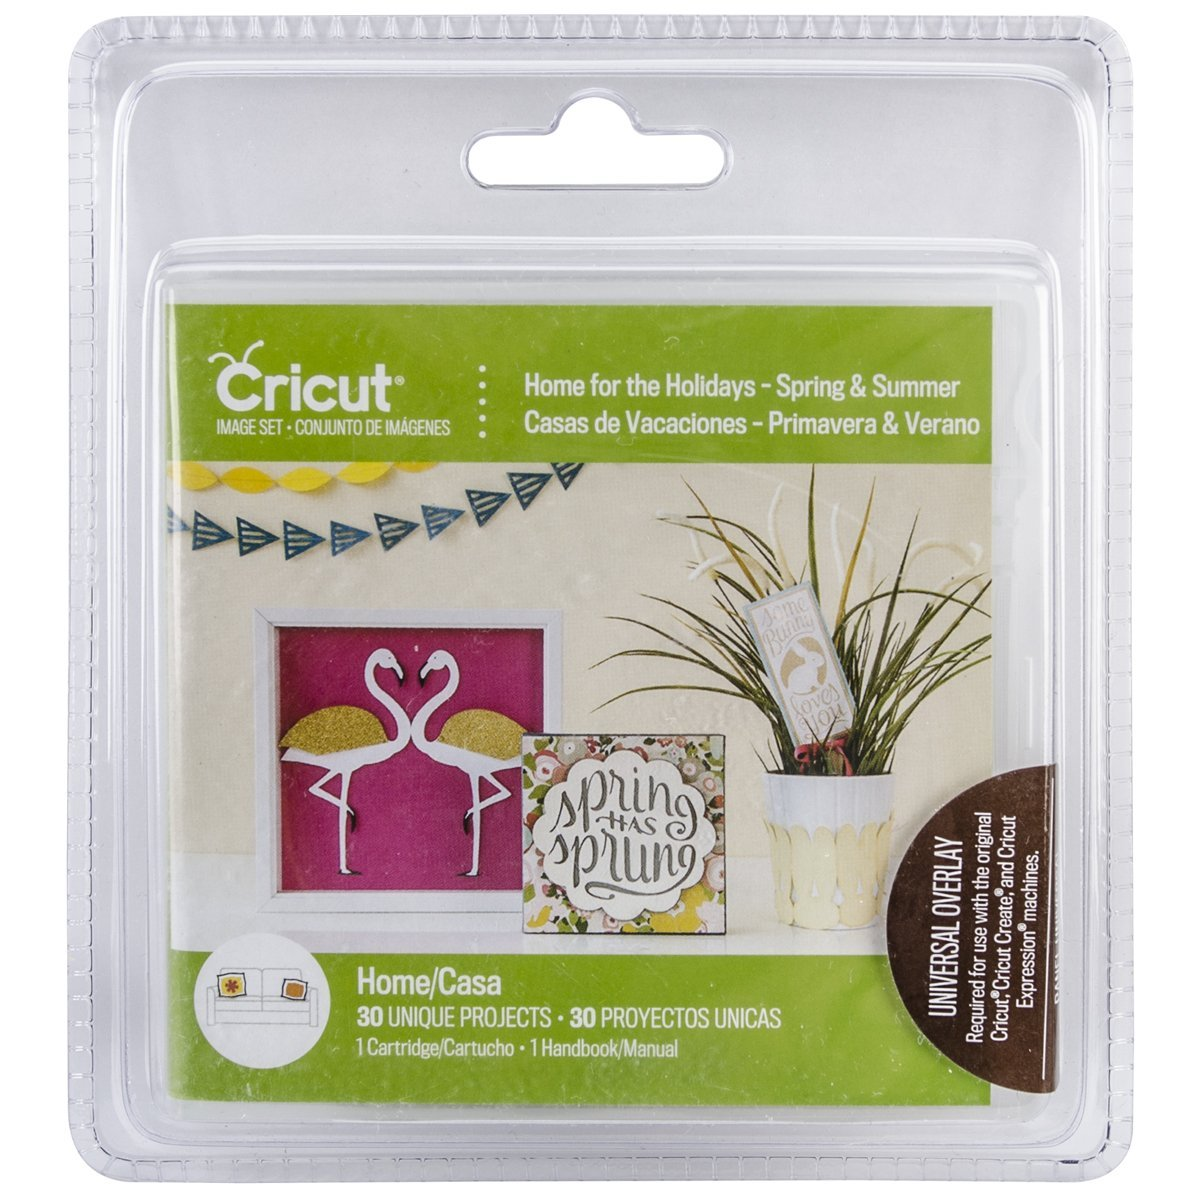 Cricut Cartridge: Home for the Holidays - Spring & Summer